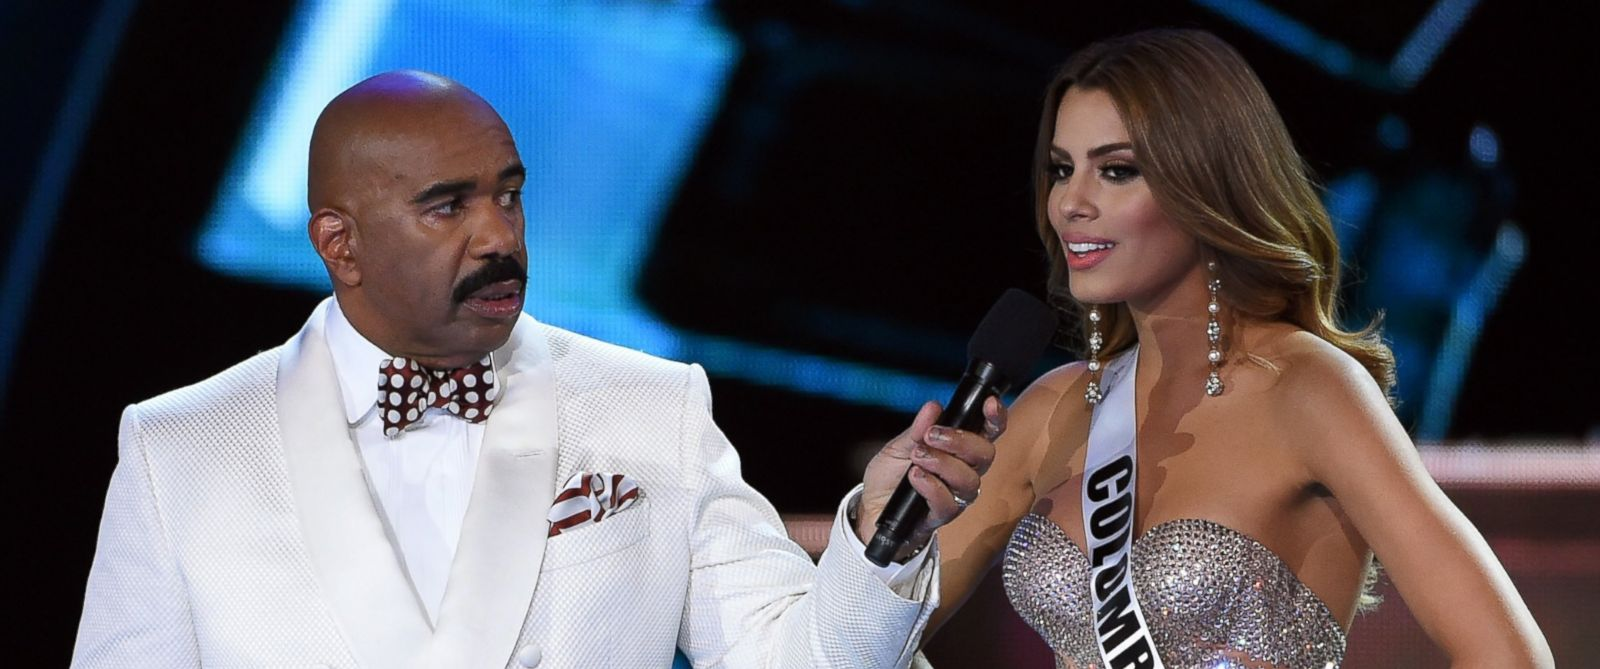 PHOTO: Host Steve Harvey listens as Miss Colombia 2015, Ariadna Gutierrez Arevalo, answers a question during the interview portion of the 2015 Miss Universe Pageant at The Axis at Planet Hollywood Resort & Casino, Dec. 20, 2015, in Las Vegas.